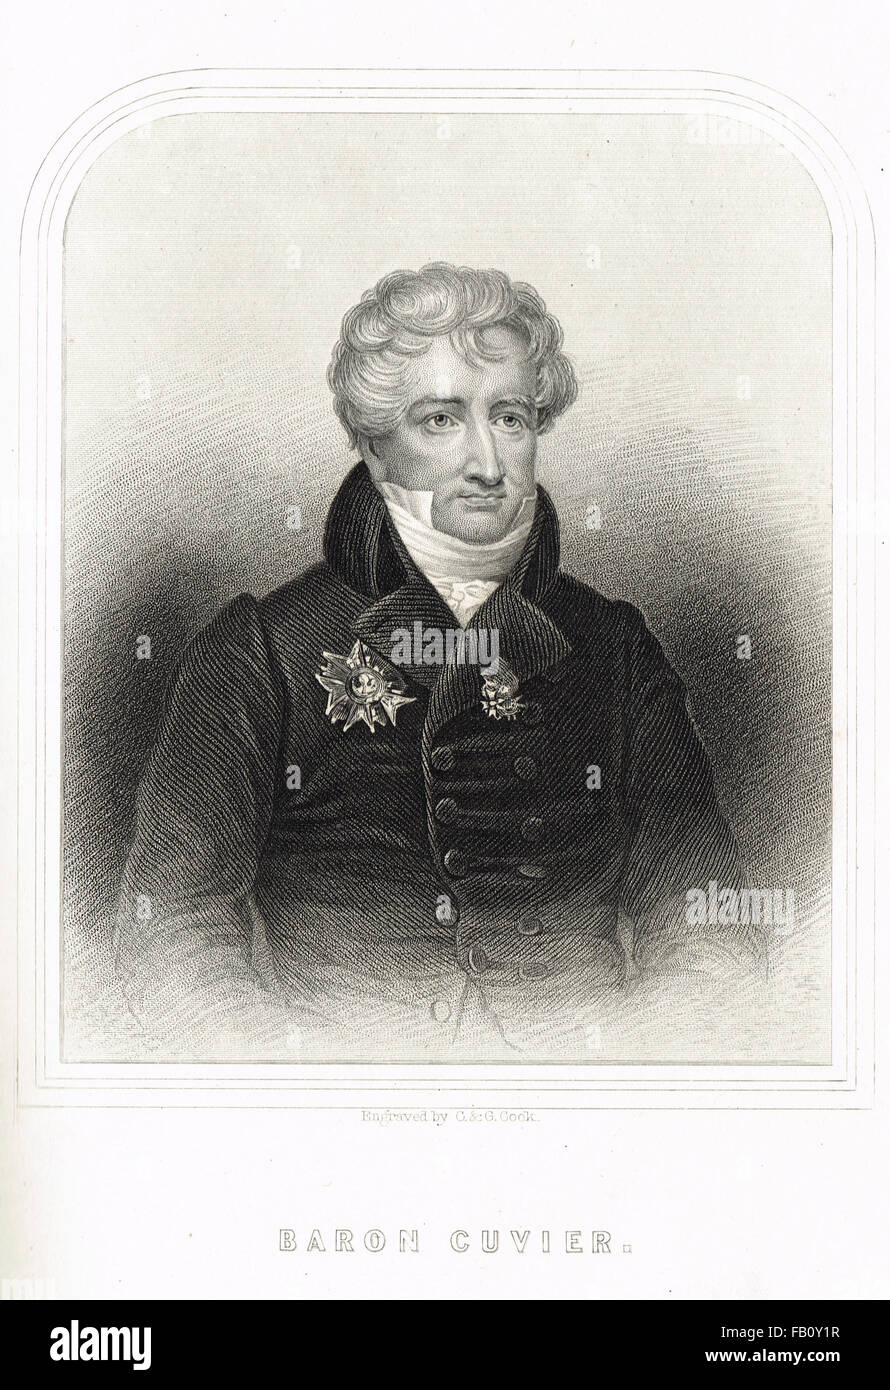 Baron Georges Cuvier 1769-1832 French Zoologist & Naturalist (Known as the Father of Paleontology) - Stock Image